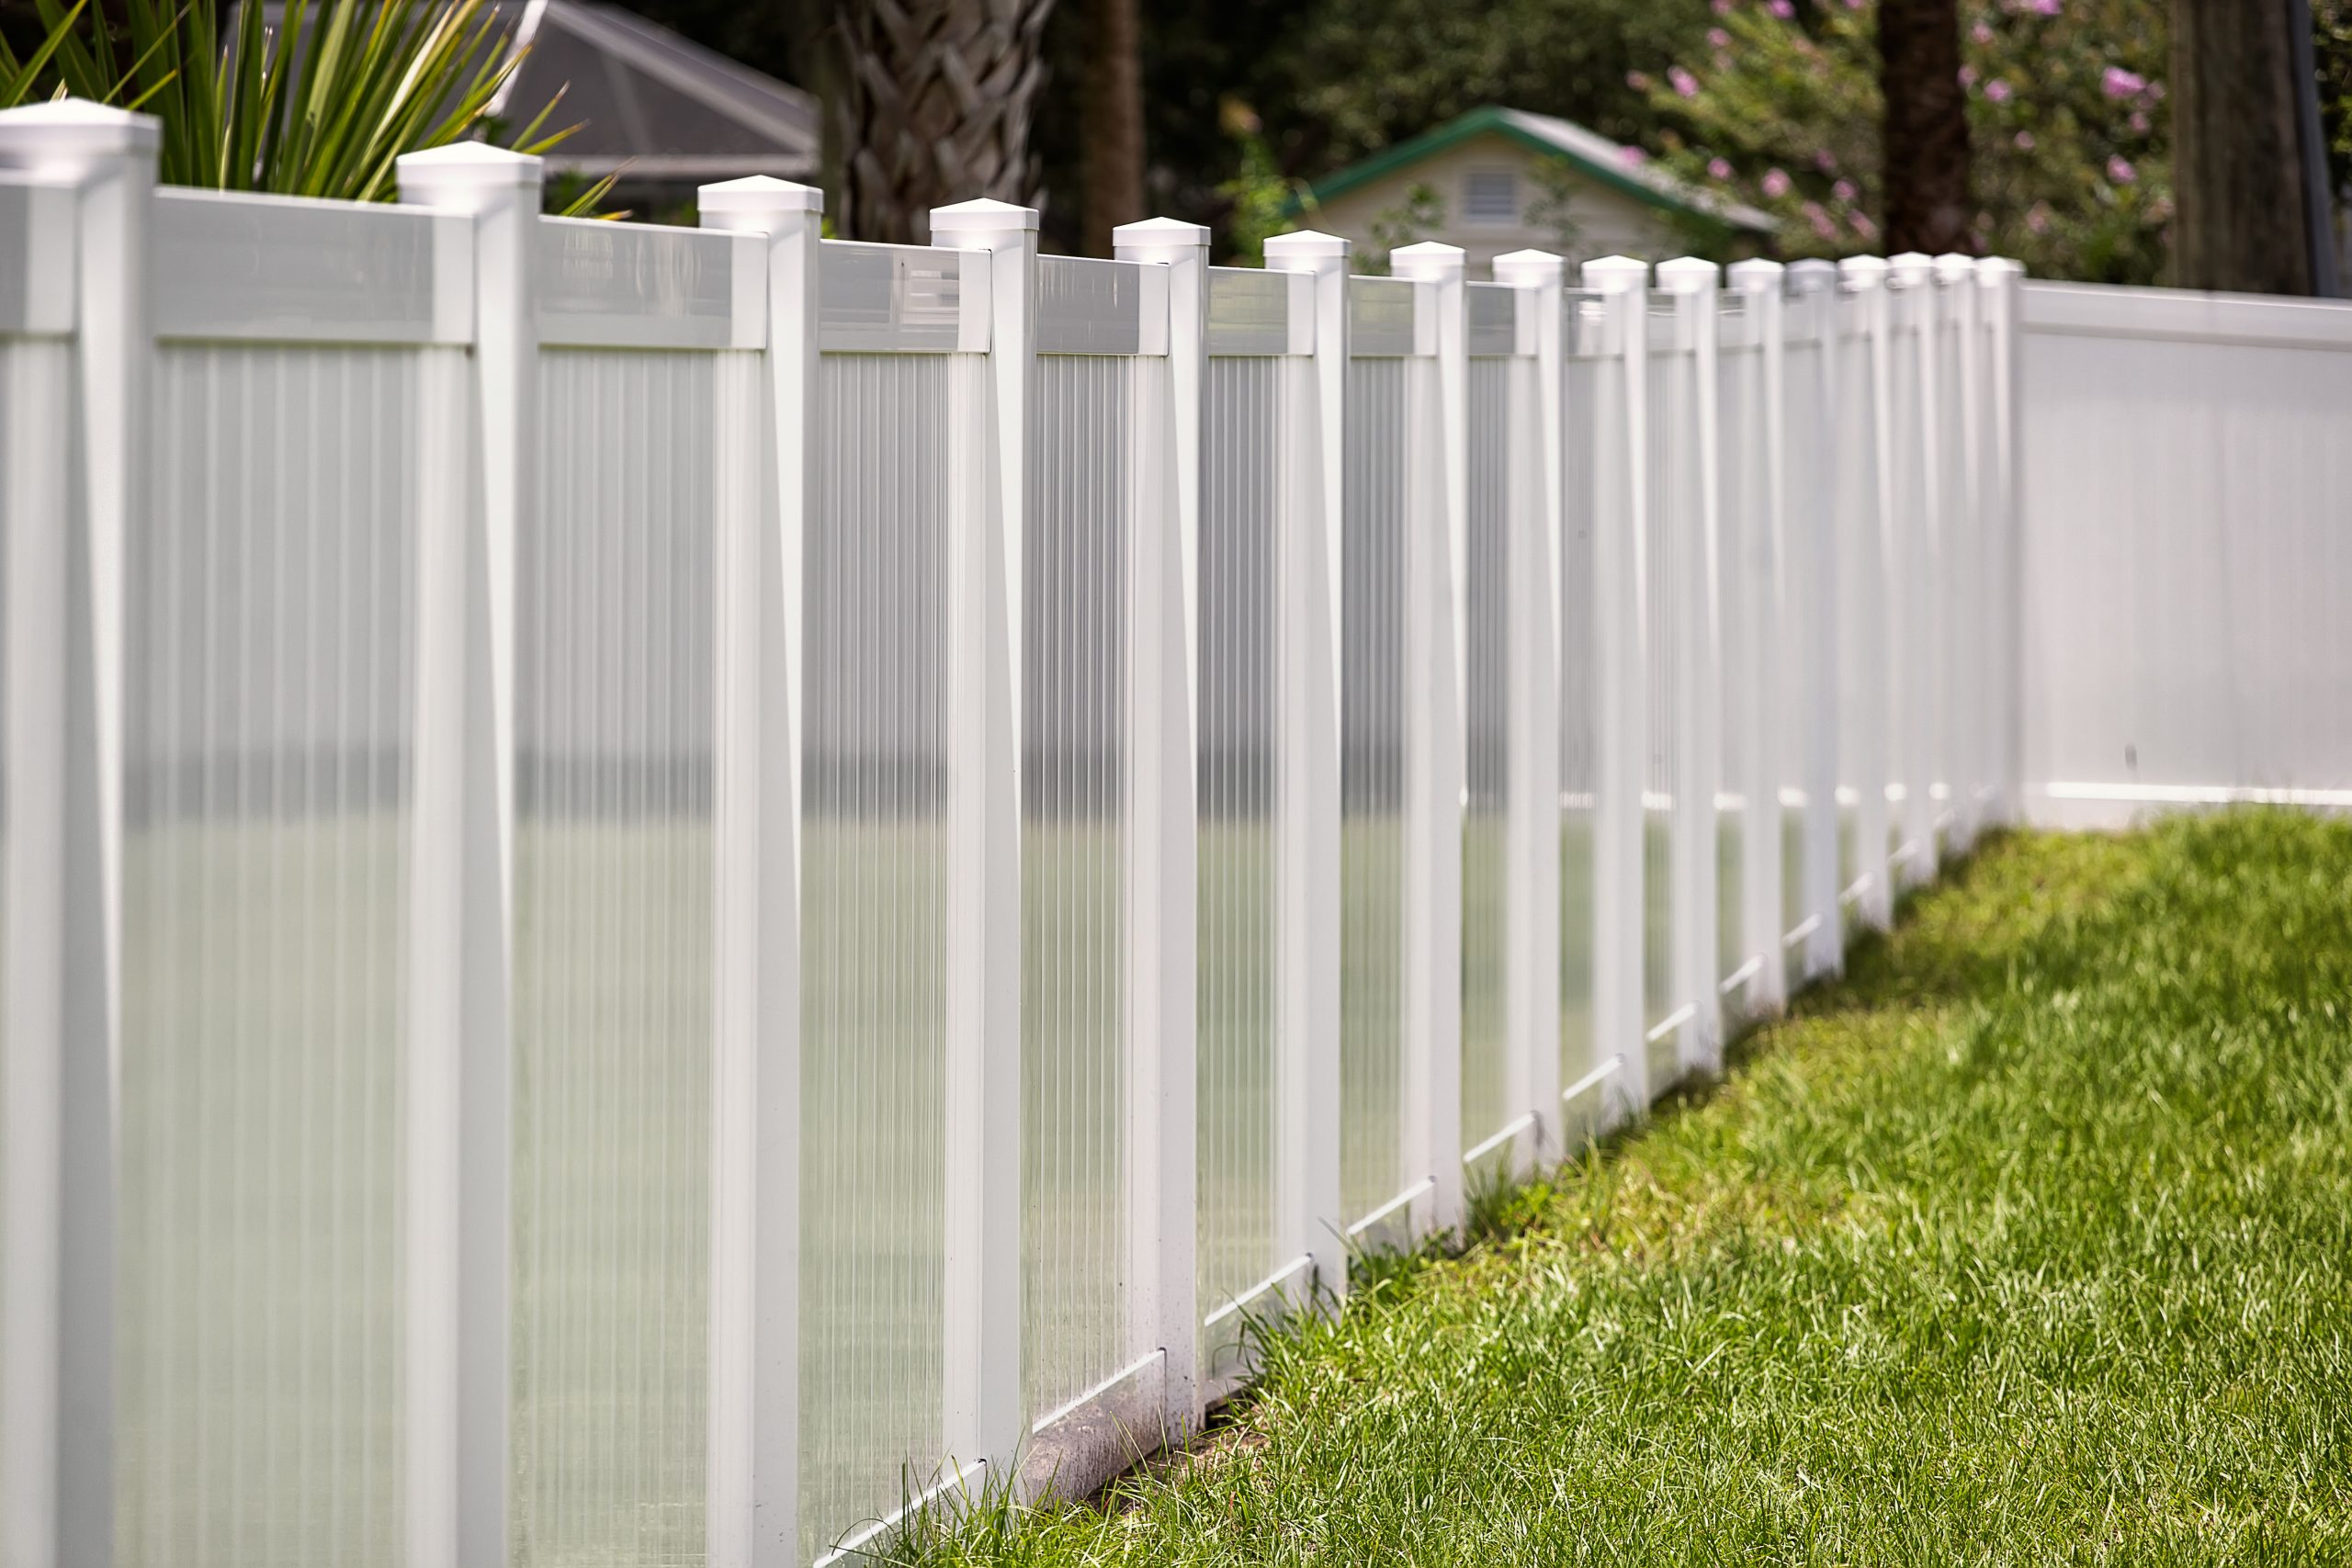 7 Top Benefits of Vinyl Fencing for Your Home